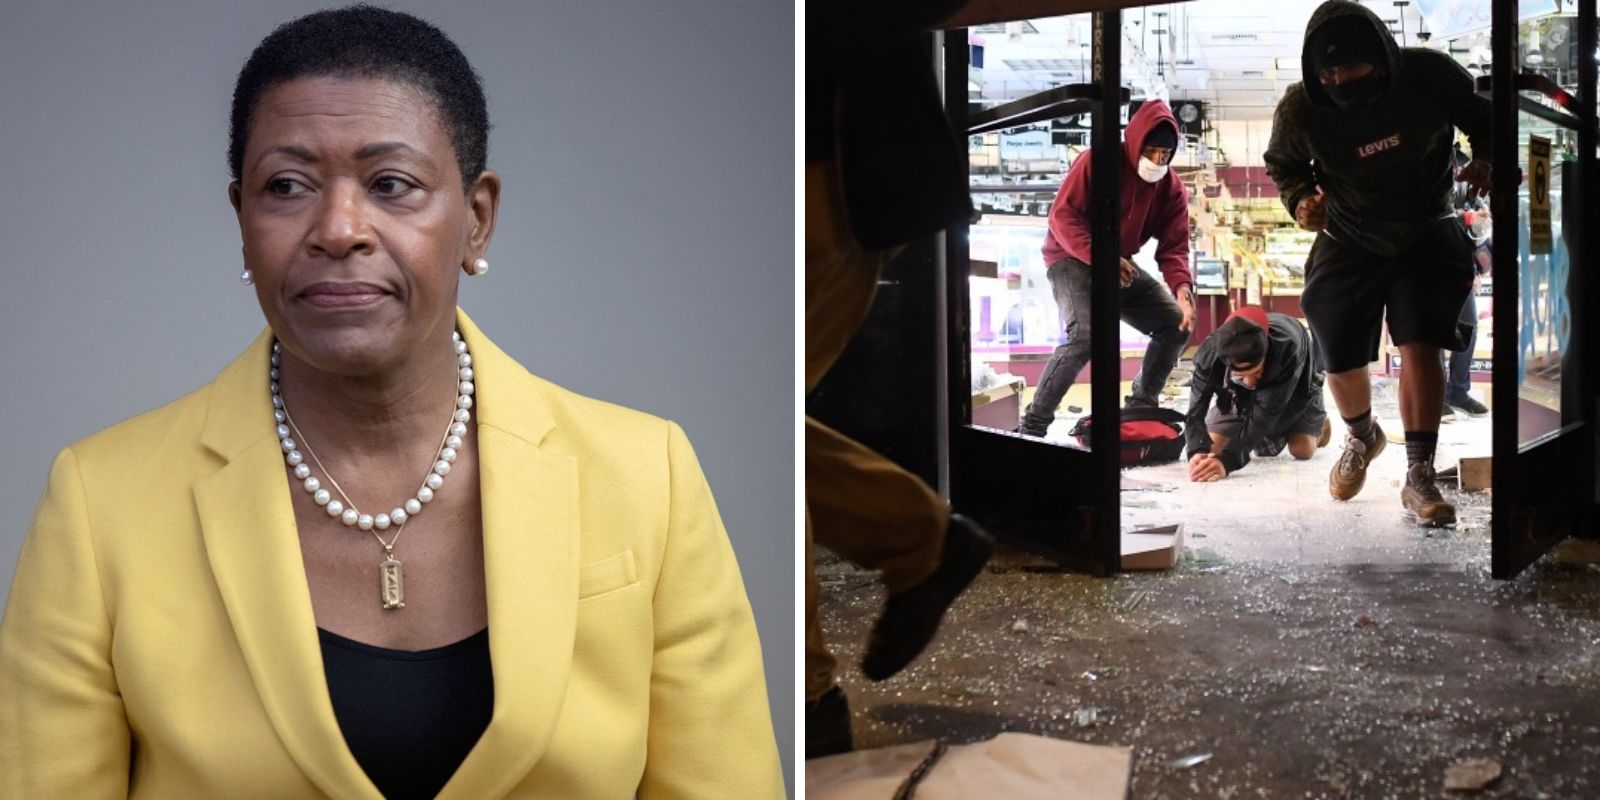 California district attorney asks police to consider looters' needs before charging them